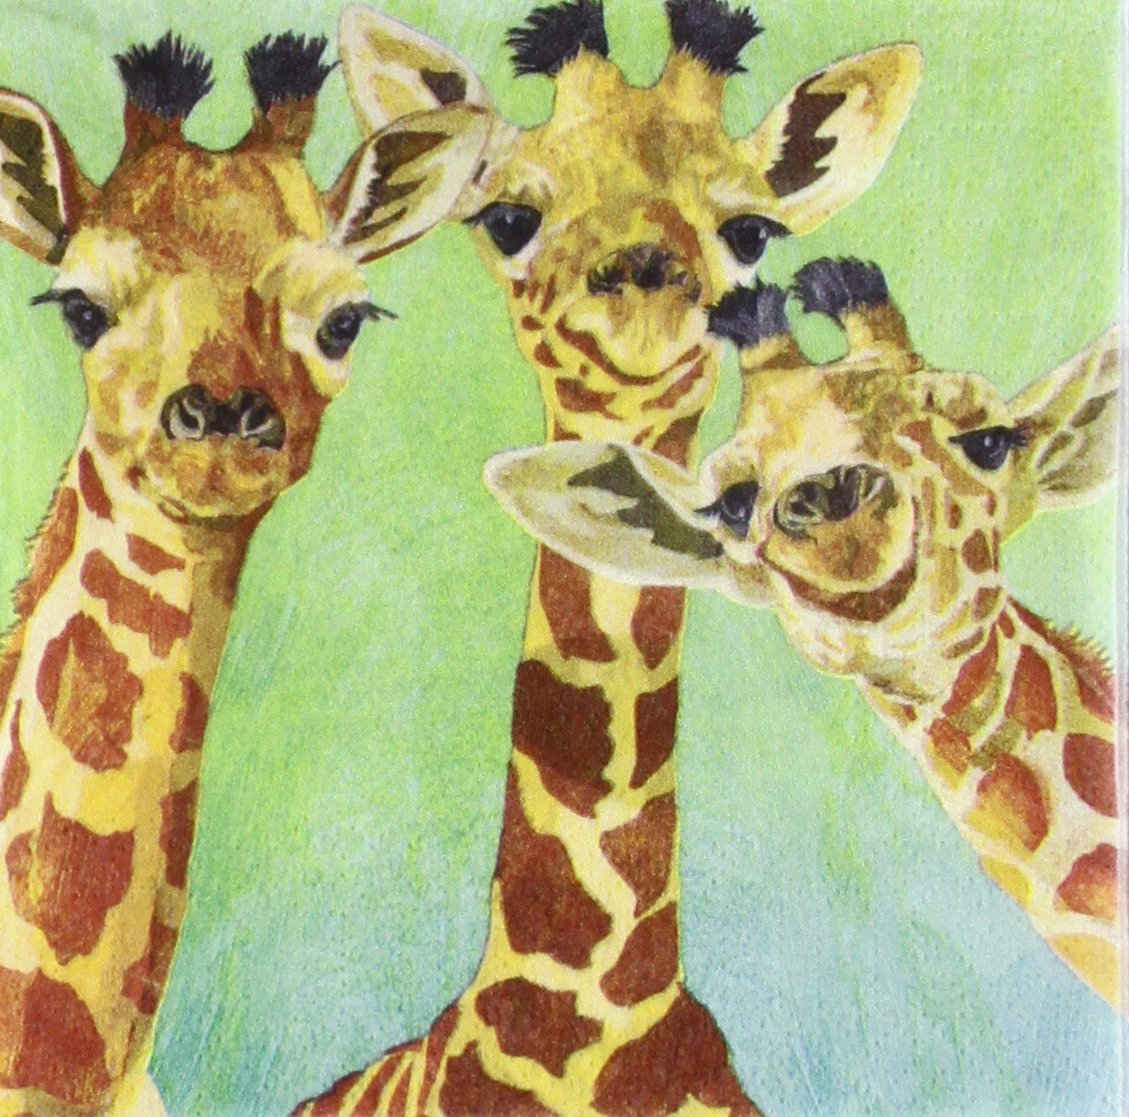 Paperproducts Design PPD 1252725 Giraffe Amigos Beverage/Cocktail Paper Napkins,5''x5'', Multicolor